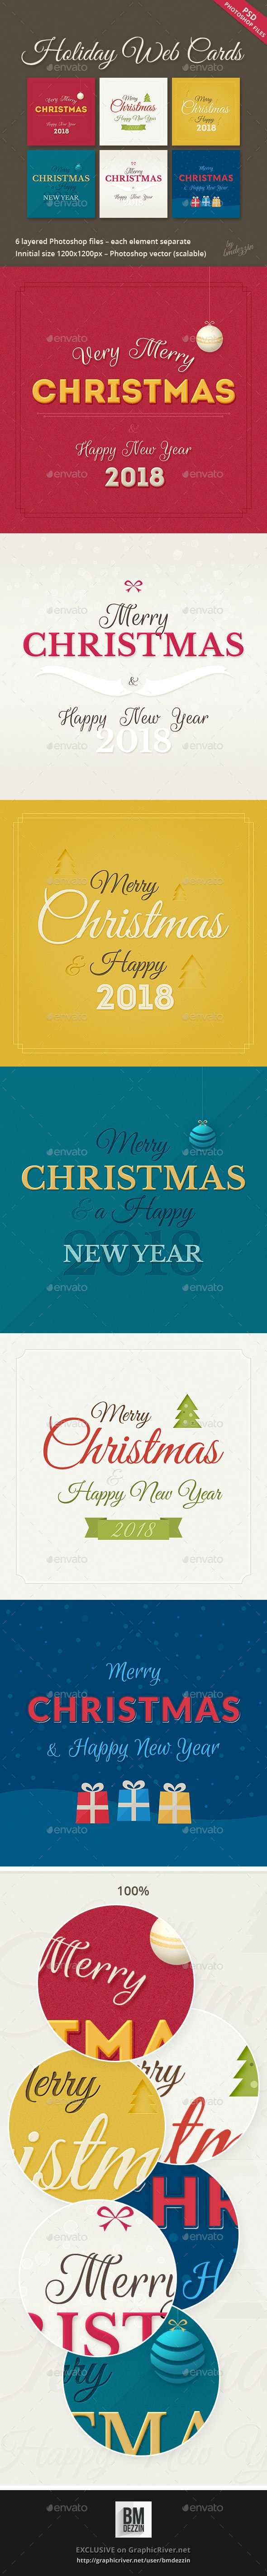 Holiday Web Cards - Banners & Ads Web Elements